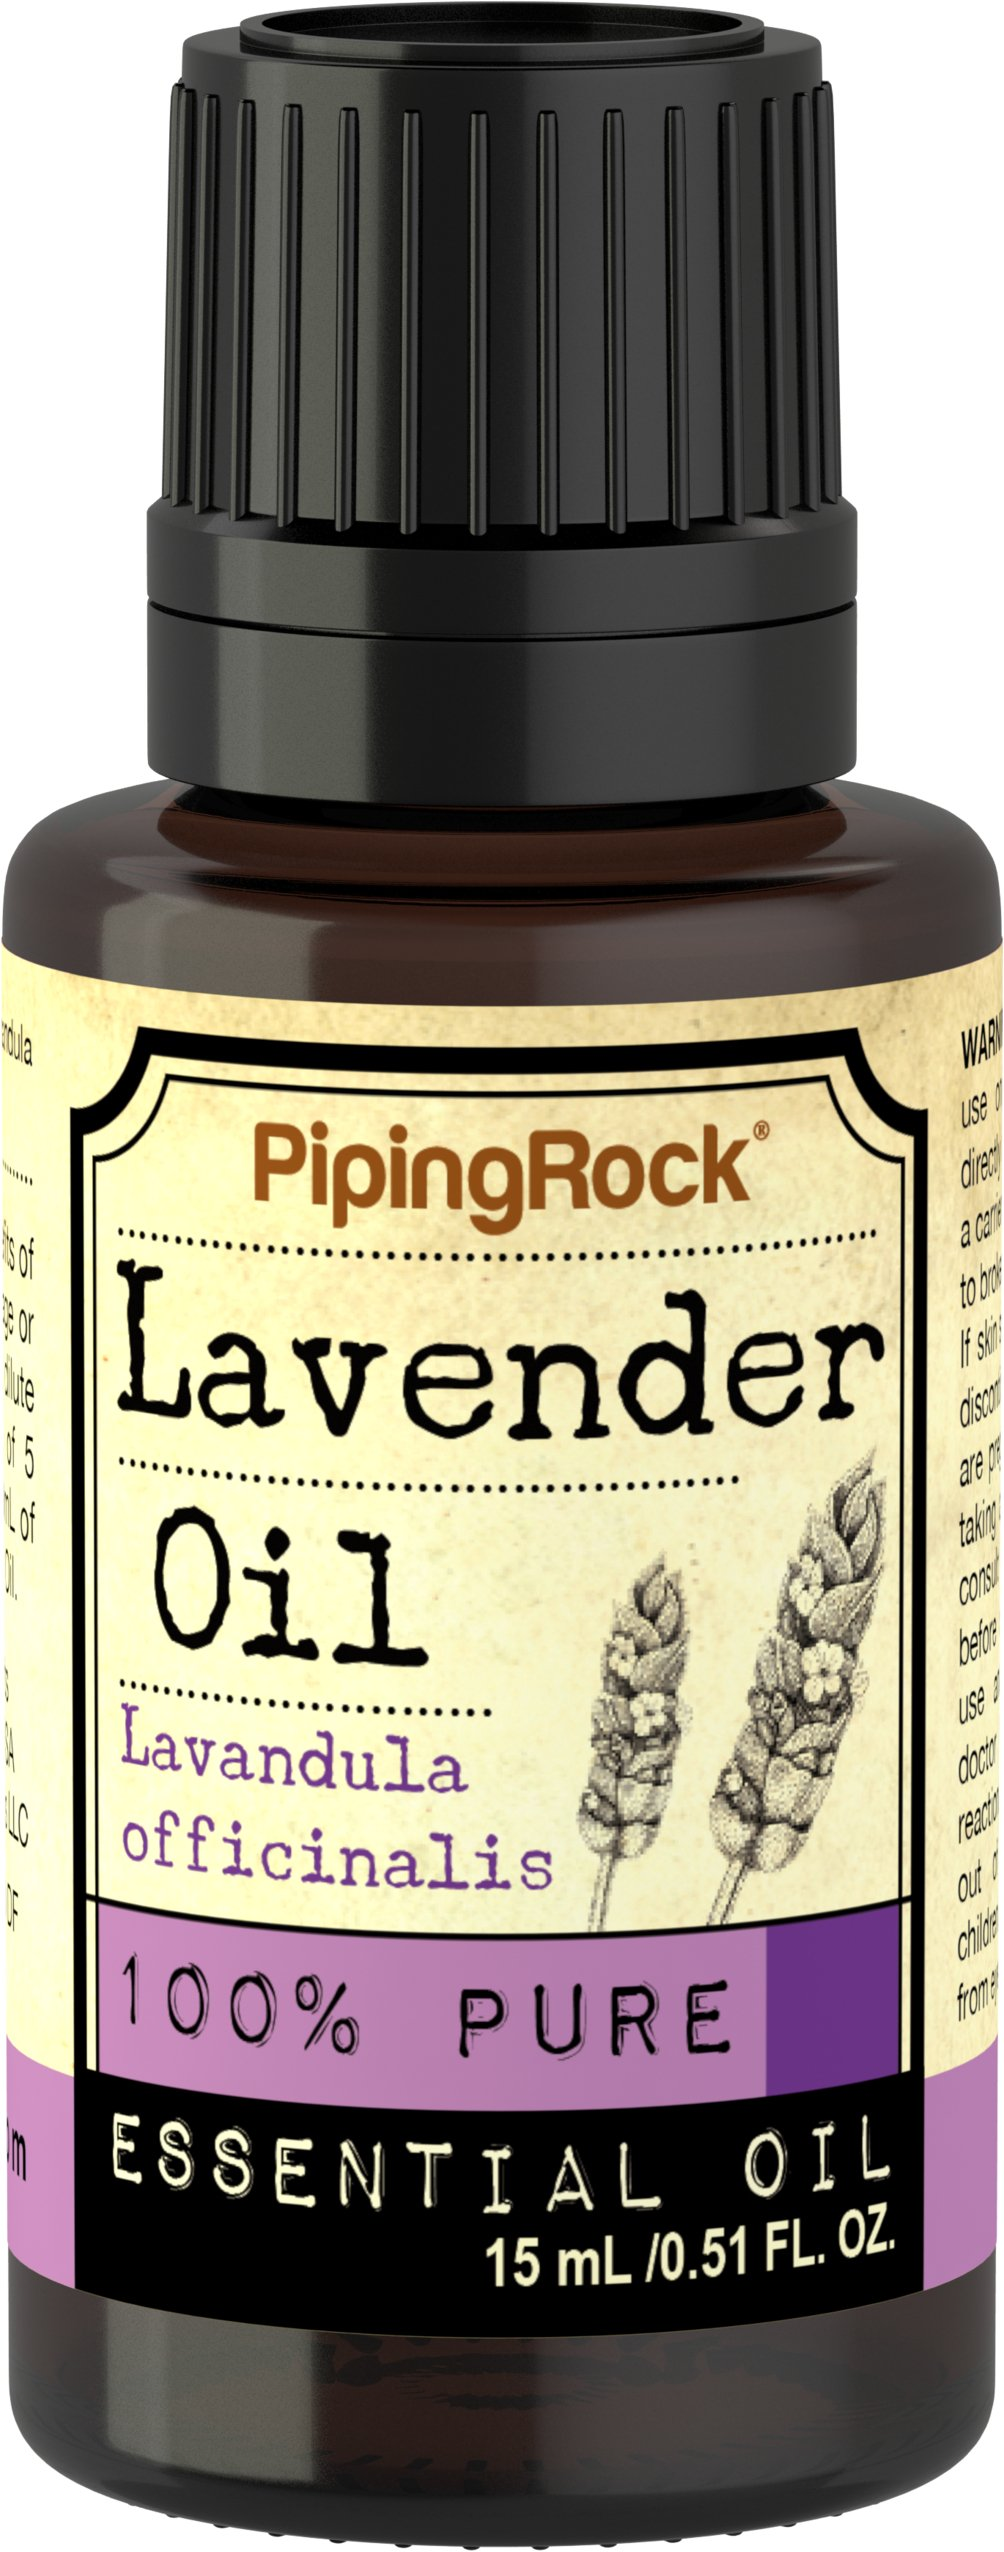 Piping Rock Lavender 100% Pure Essential Oil 1/2 oz (15 ml) Dropper Bottle Lavandula Officinalis Therapeutic Grade